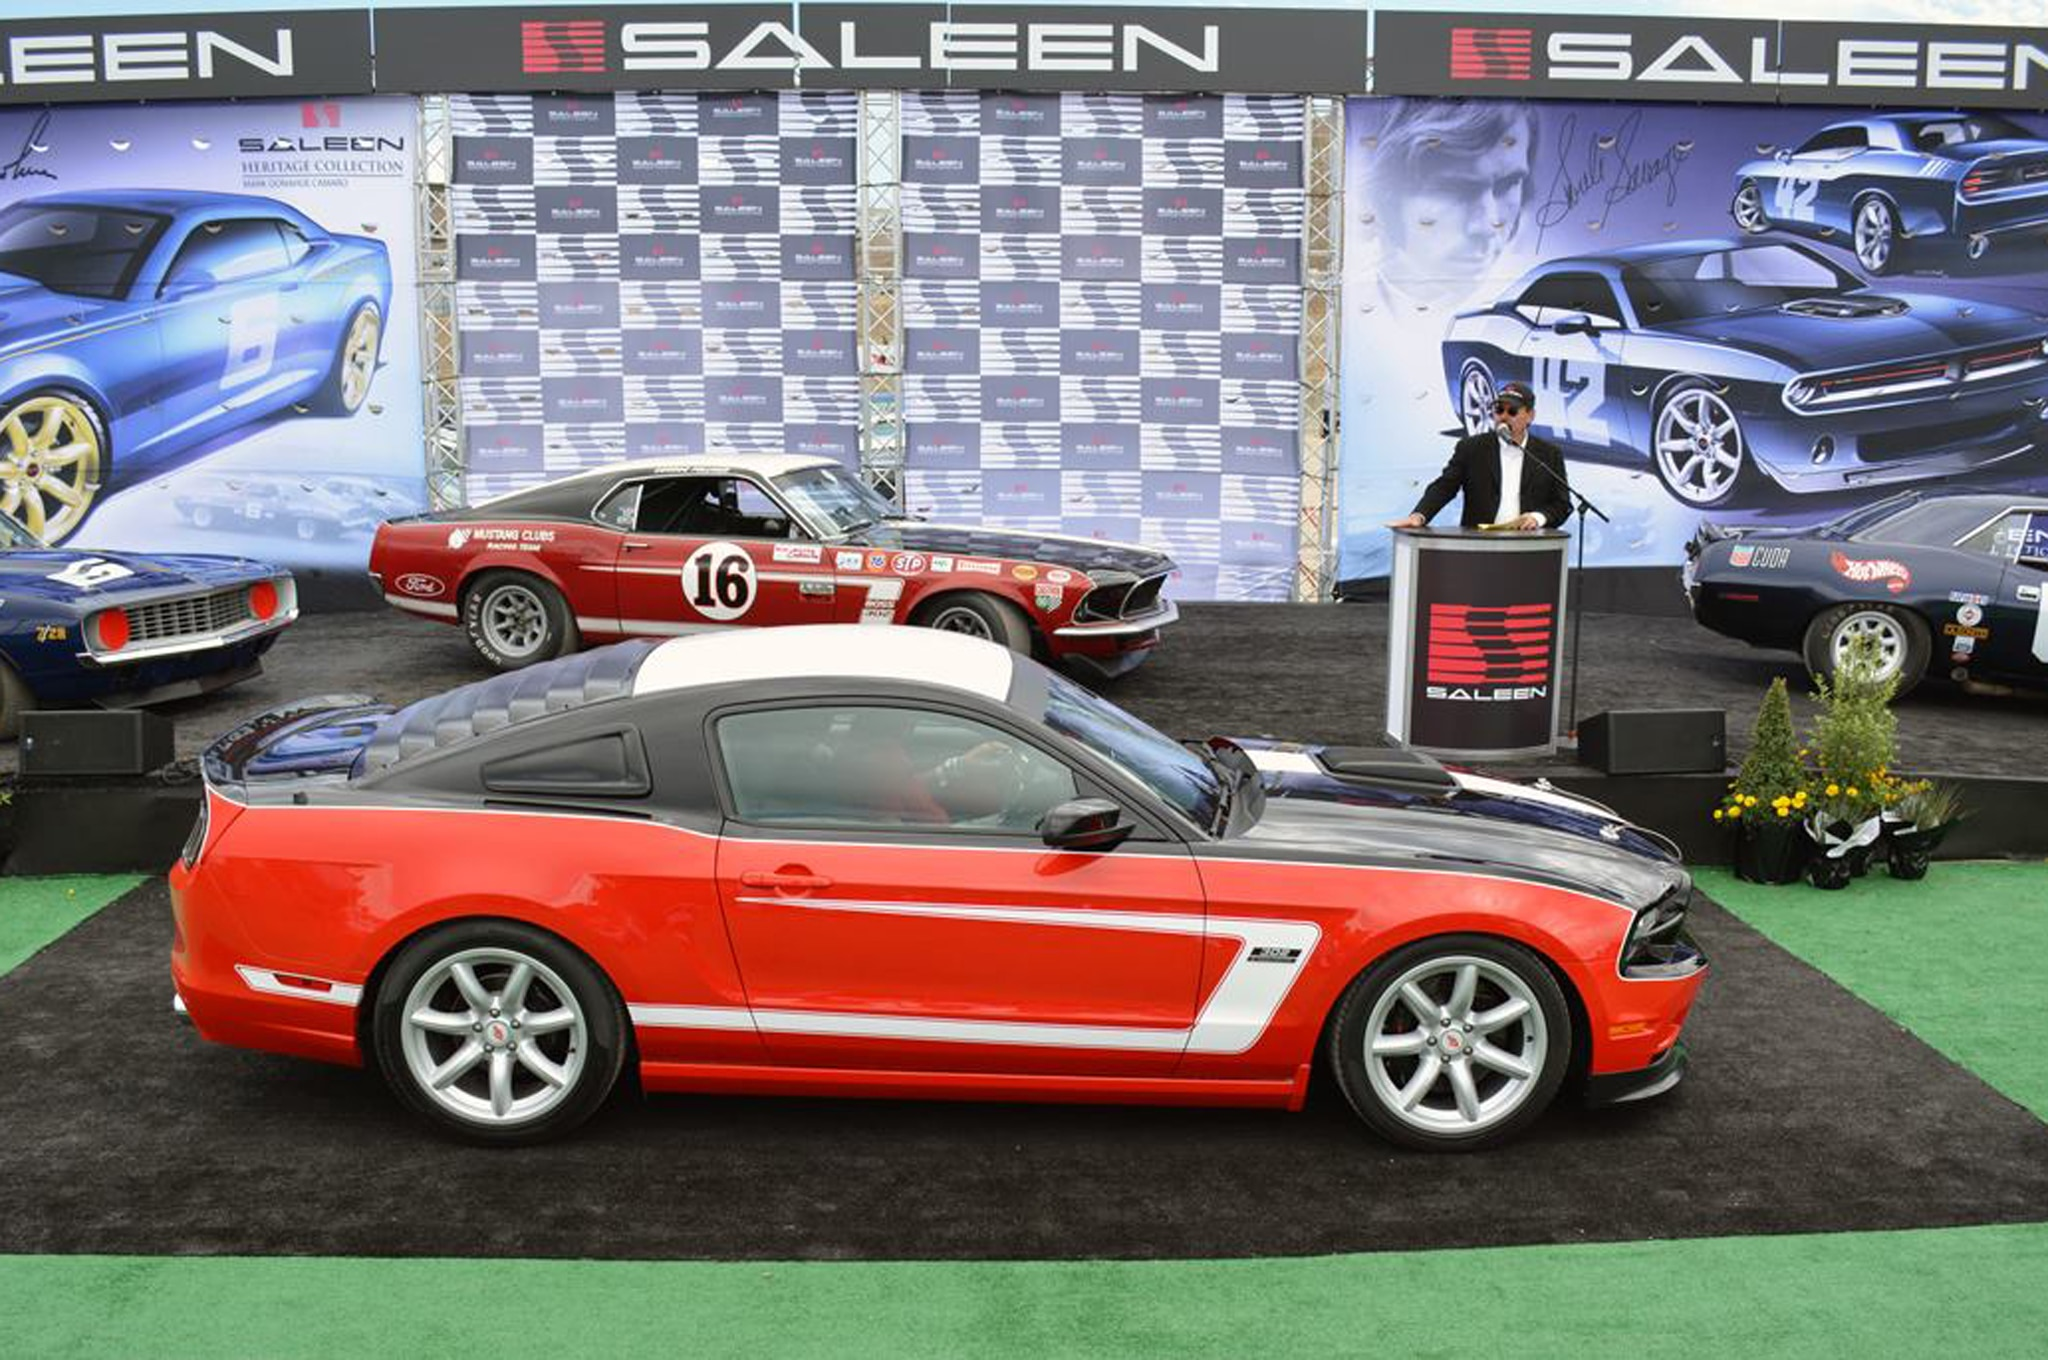 2014 Saleen George Follmer Mustang Profile1